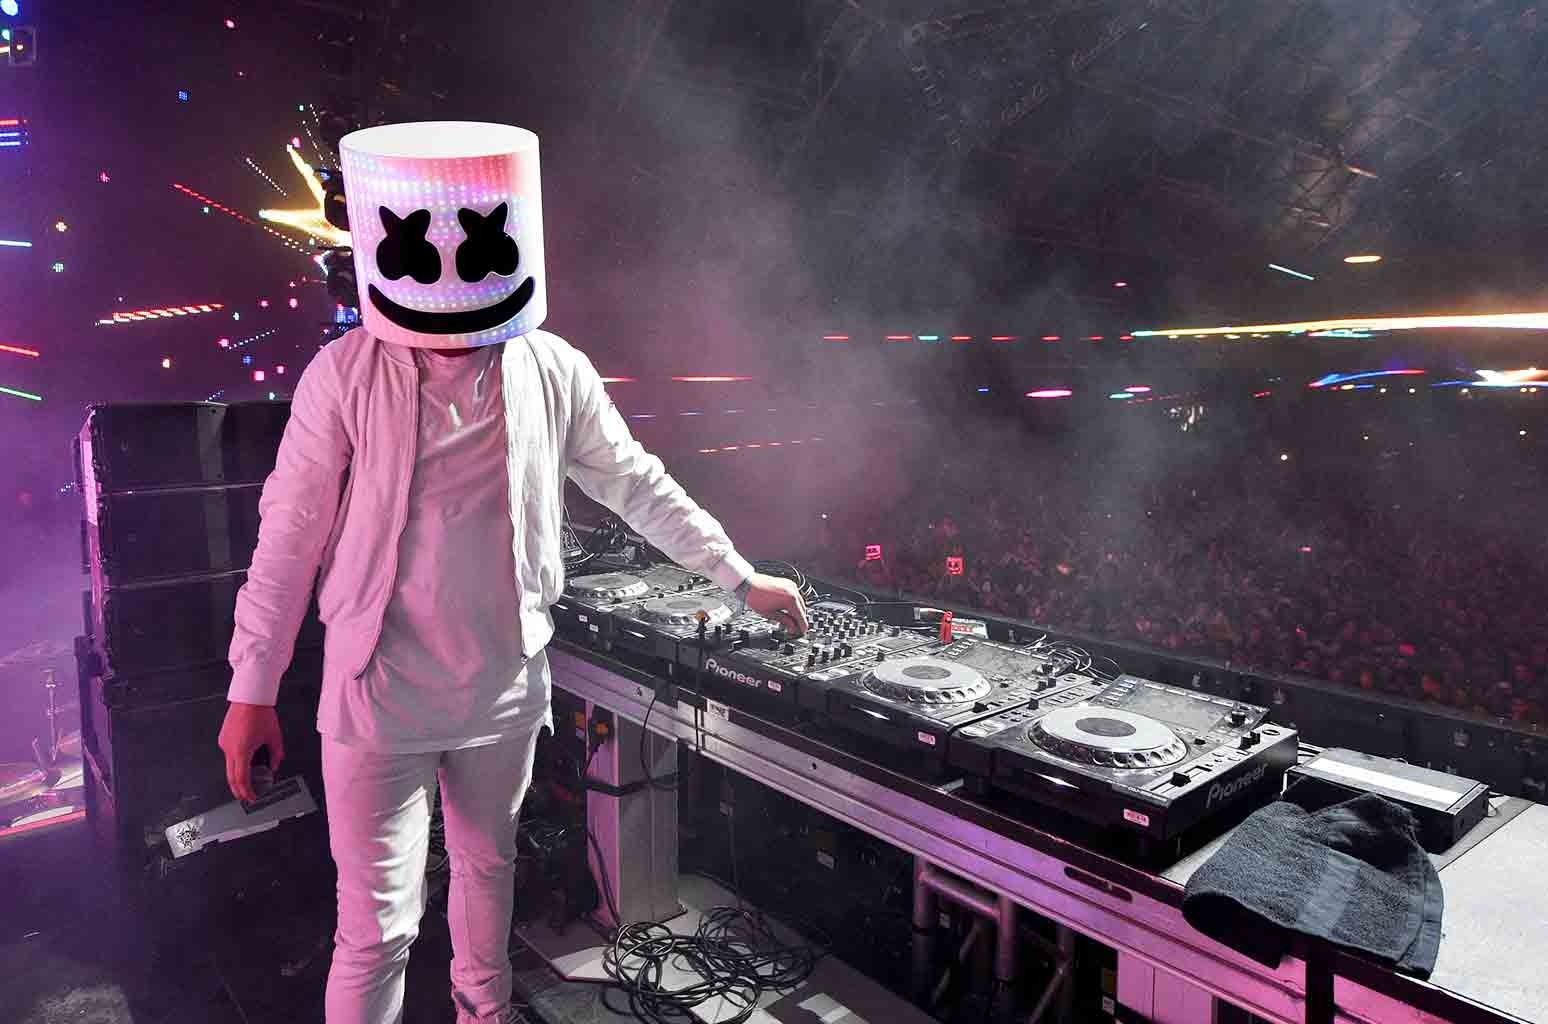 Marshmello performs at the Sahara tent during day 3 of the Coachella Valley Music And Arts Festival (Weekend 1) at the Empire Polo Club on April 16, 2017 in Indio, Calif.